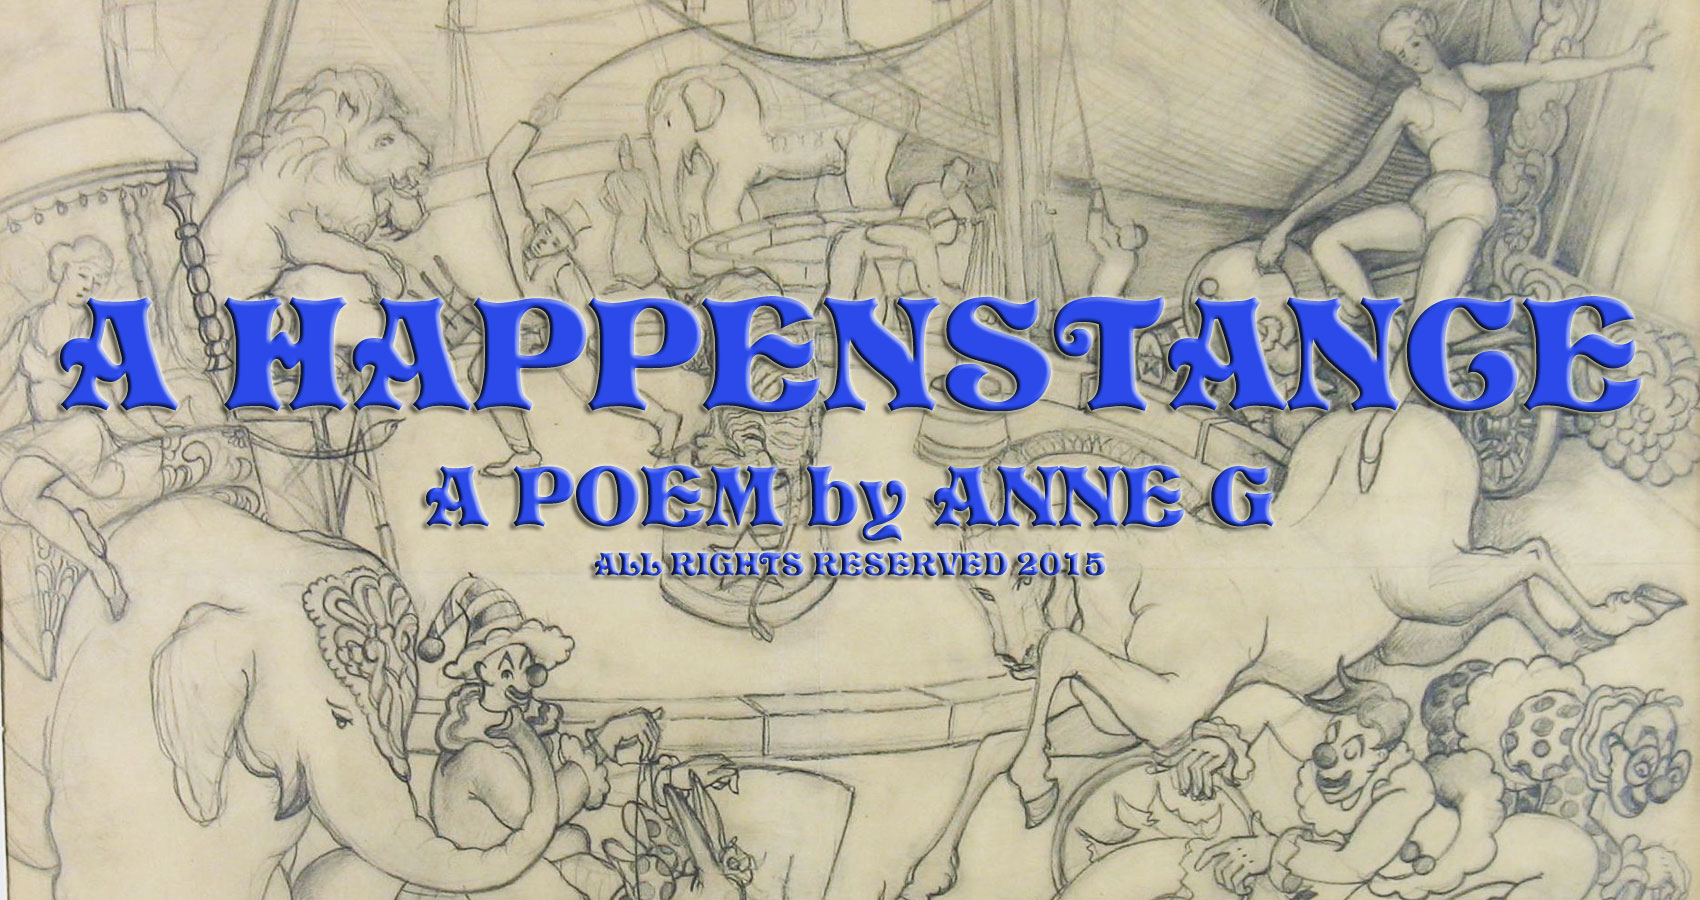 A Happenstance at spillwords.com by Anne G